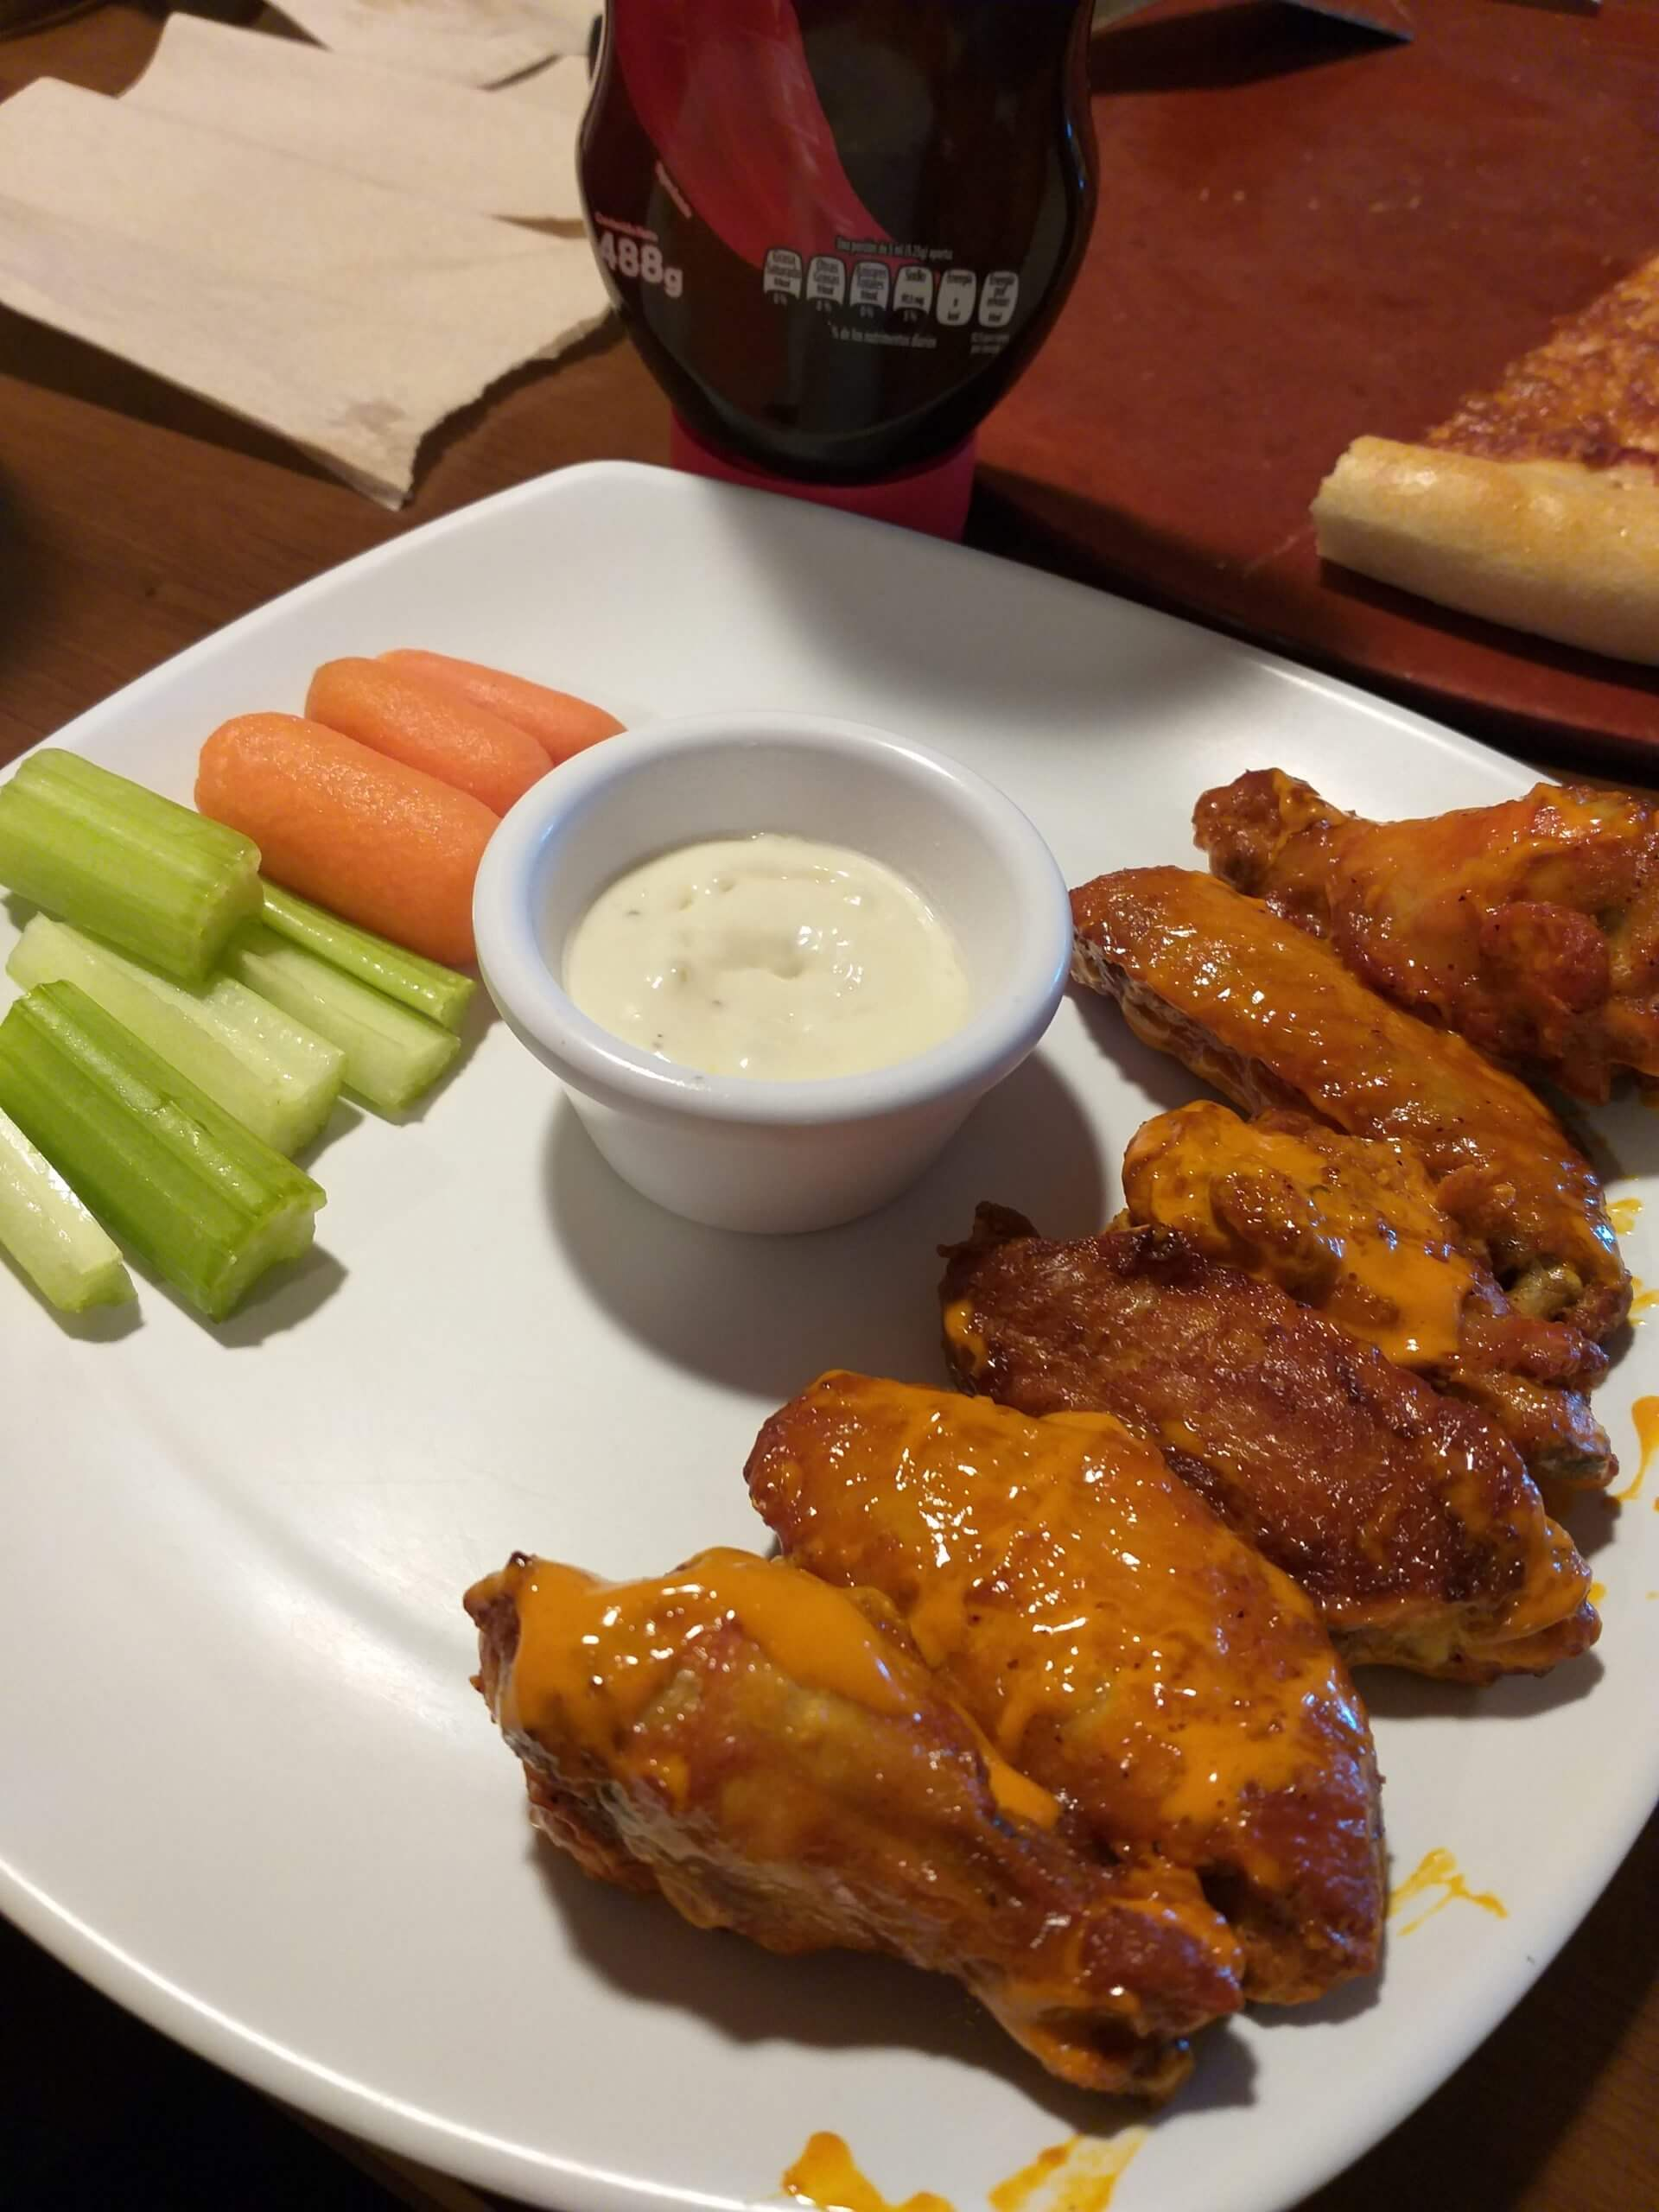 The Bff Of Pizza Pizza Hut Chicken Wings Review Fast Food Menu Prices